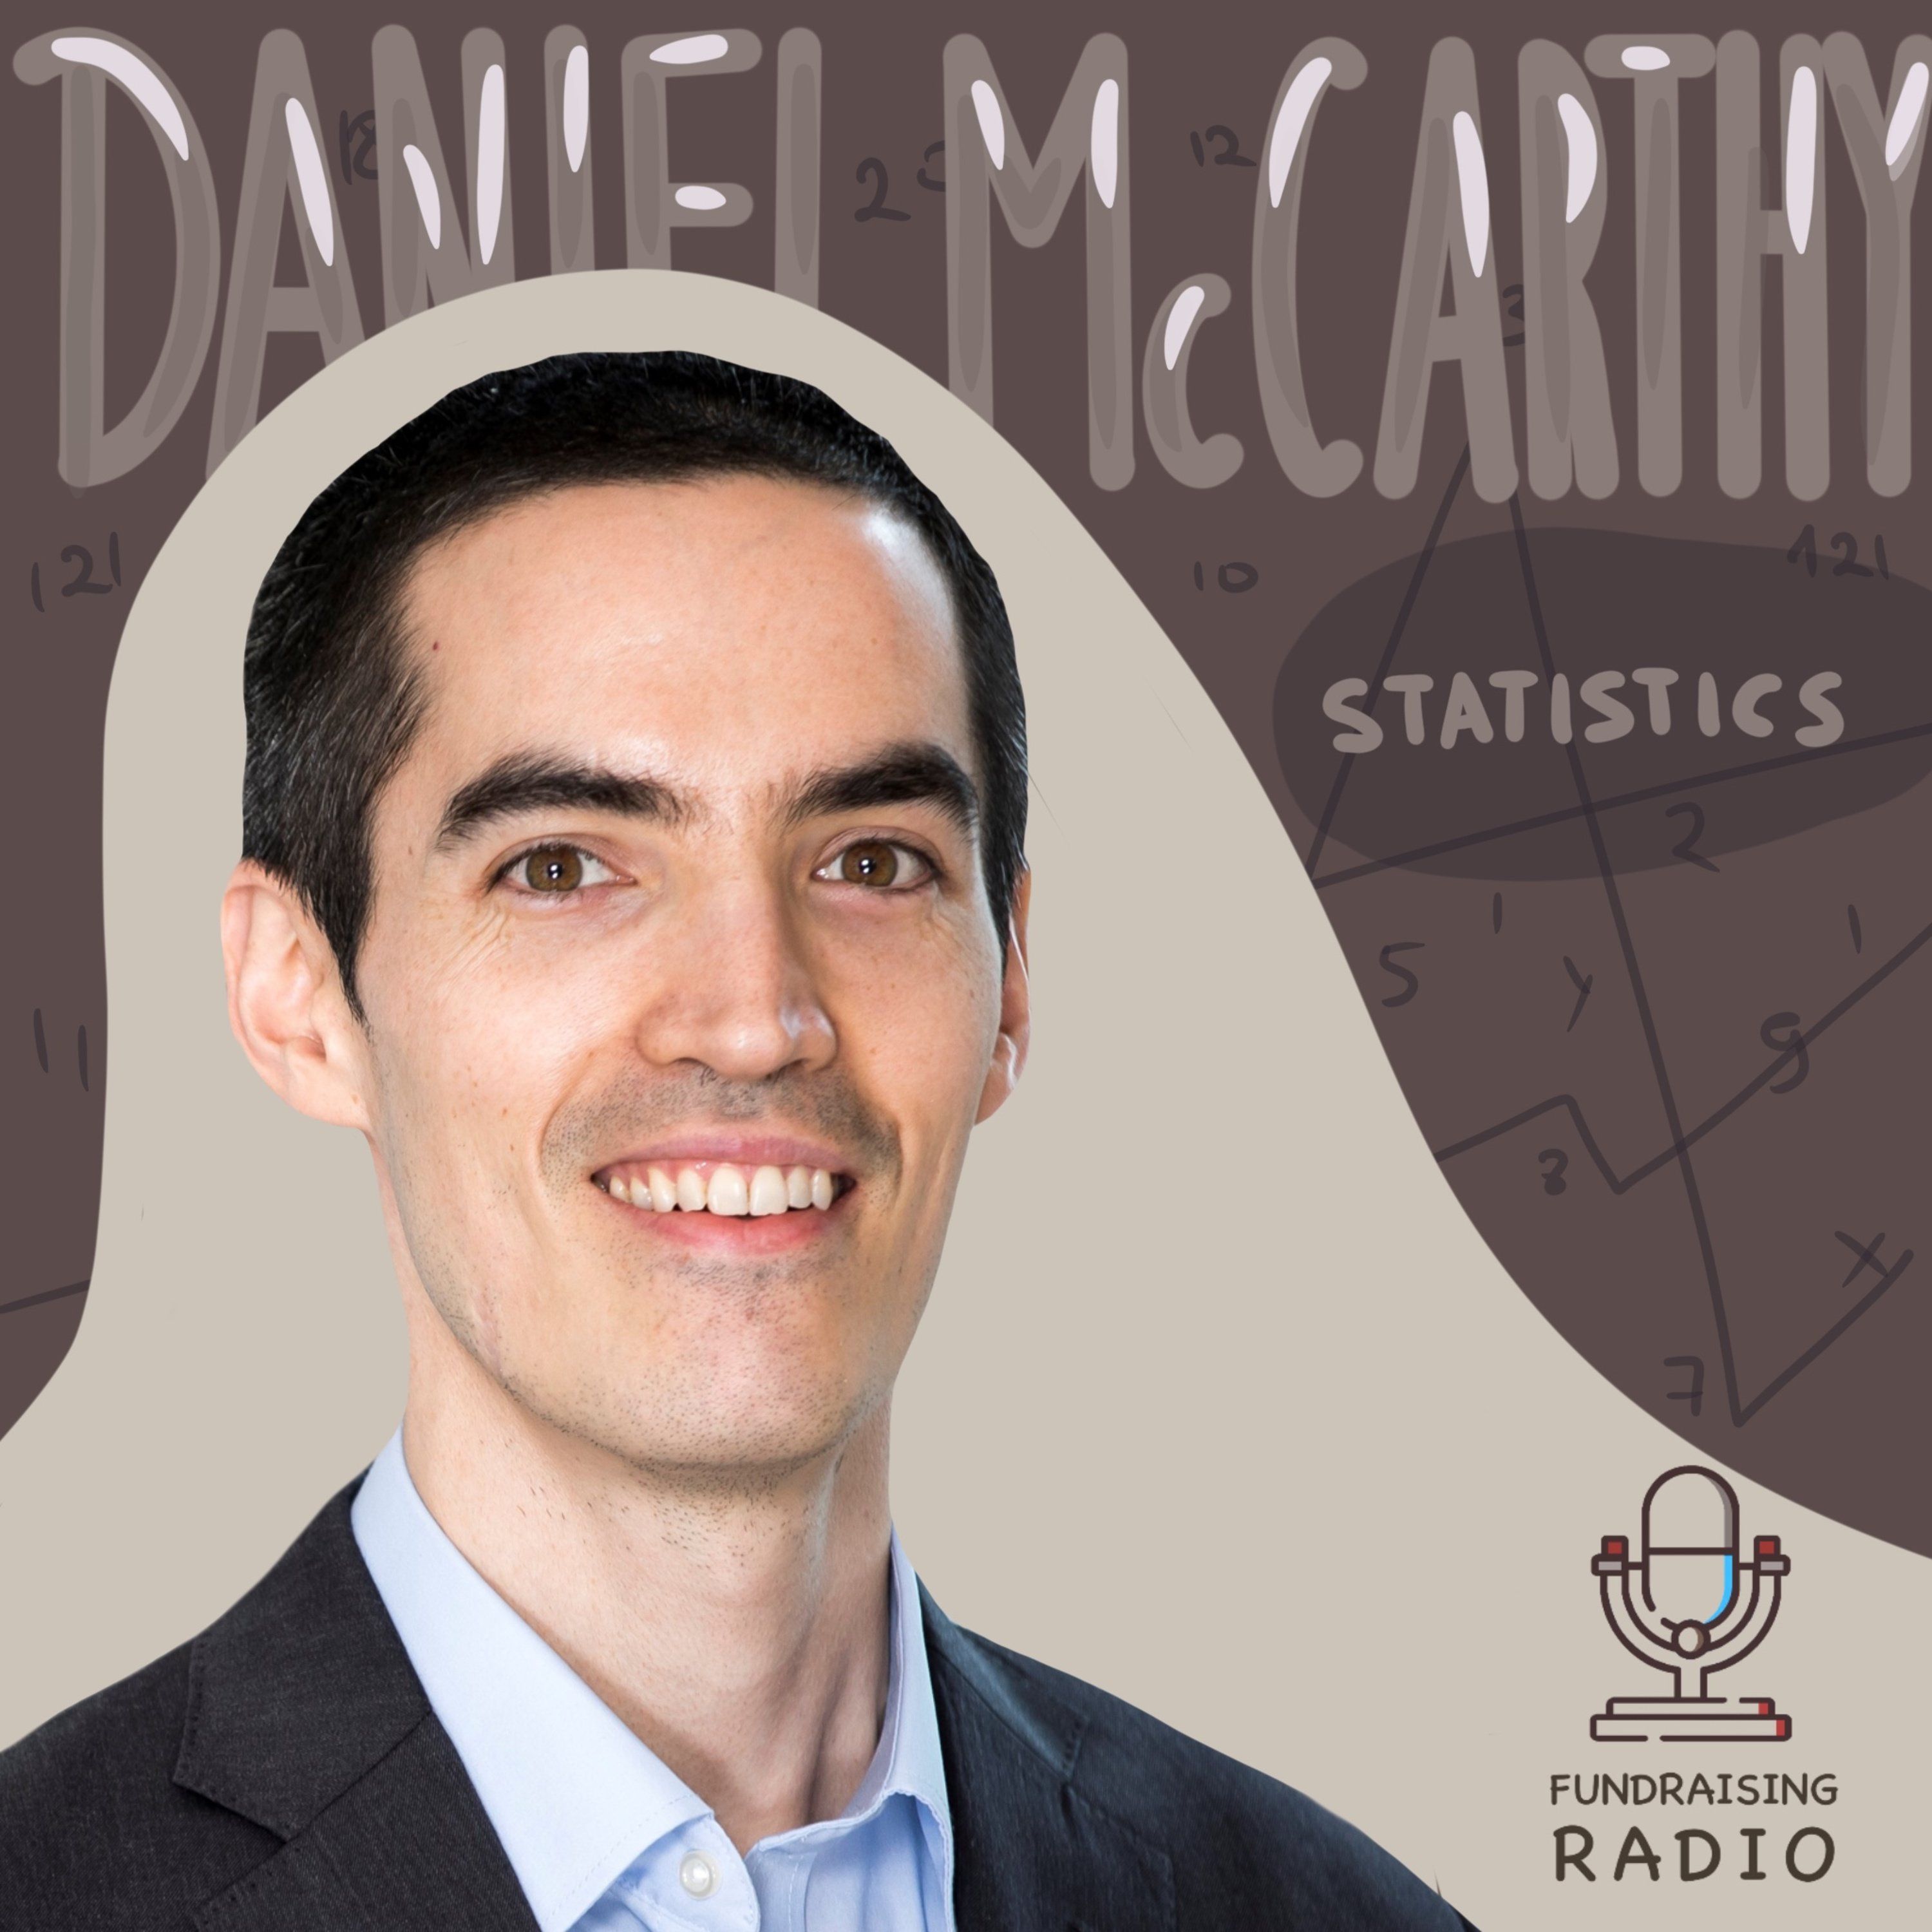 The stats - how to evaluate companies. By Daniel McCarthy